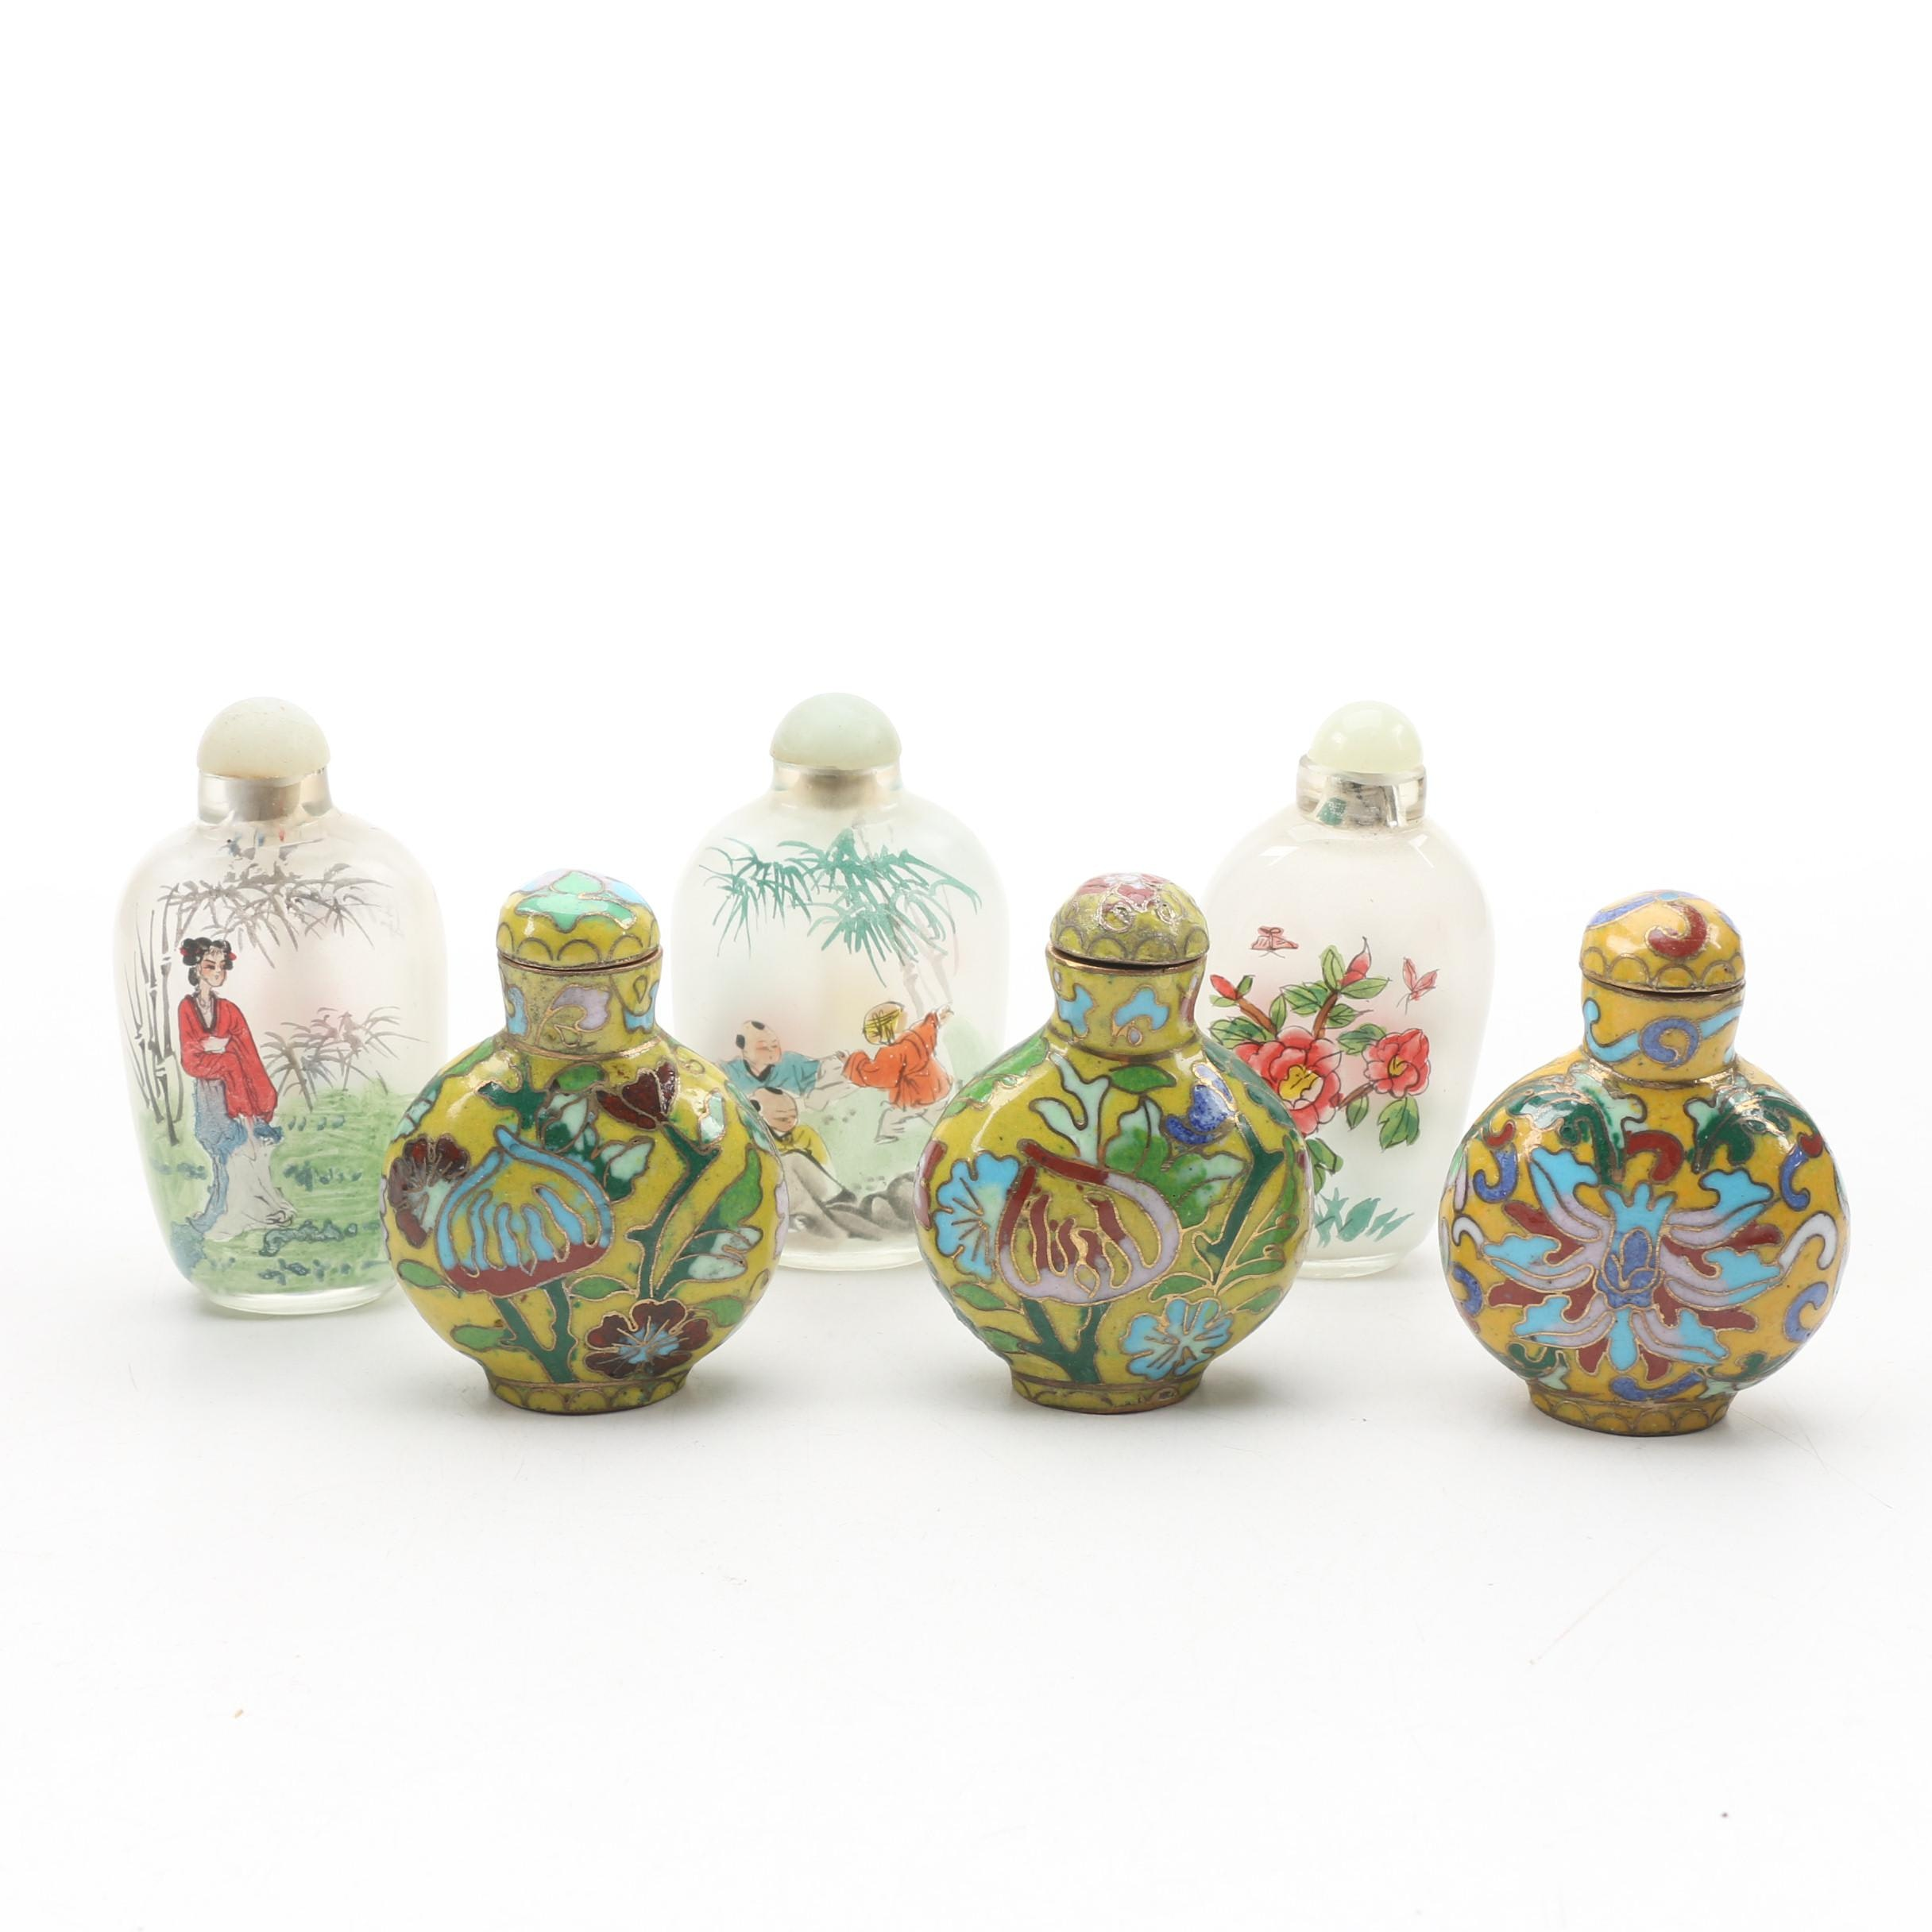 Chinese Reverse Painted and Cloisonné Snuff Bottles